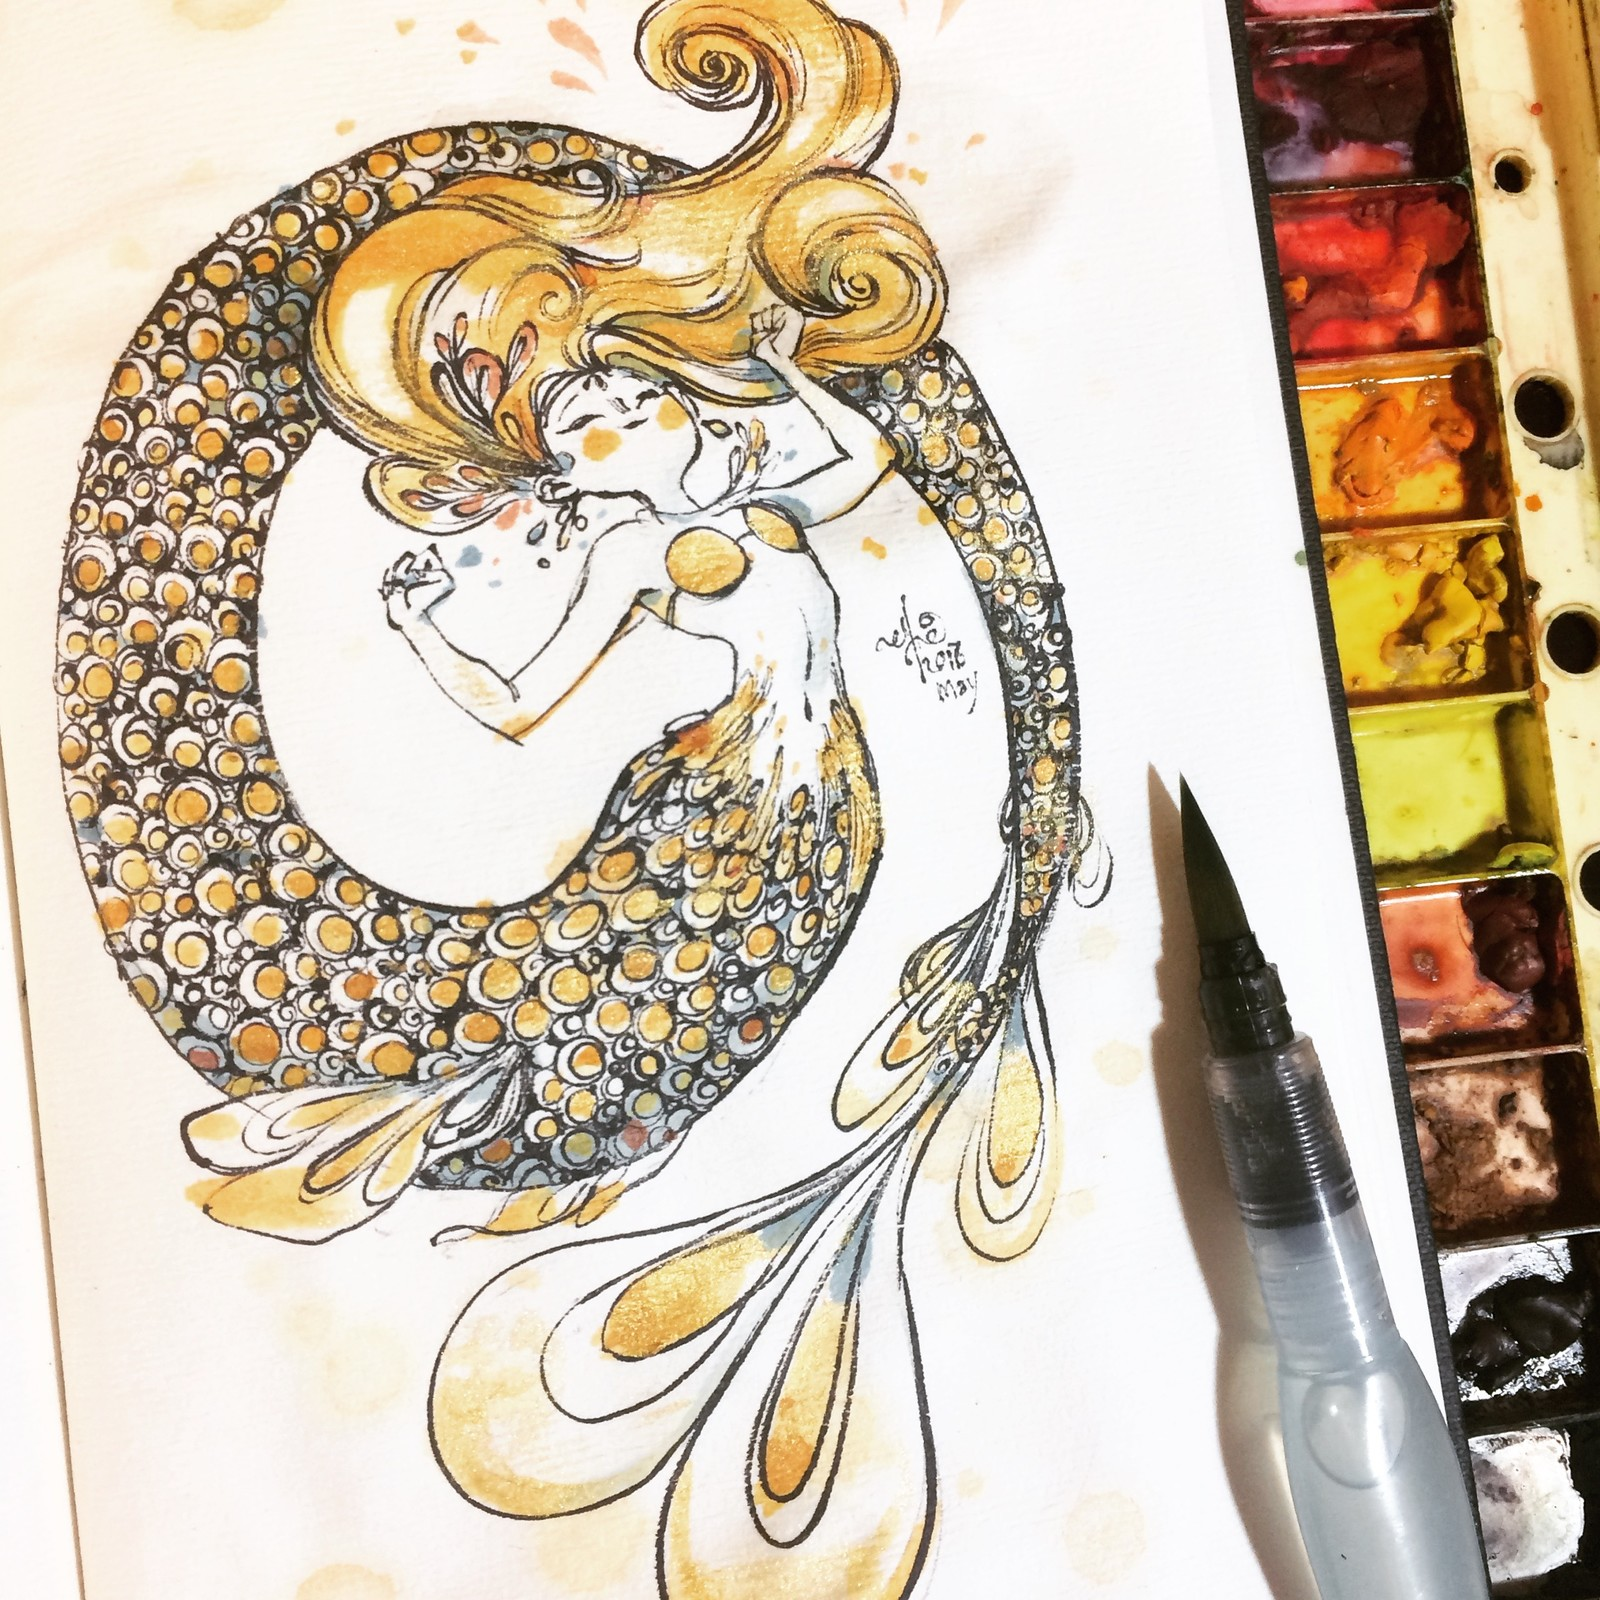 Fight away them Monday blues with a yellow mermaid!